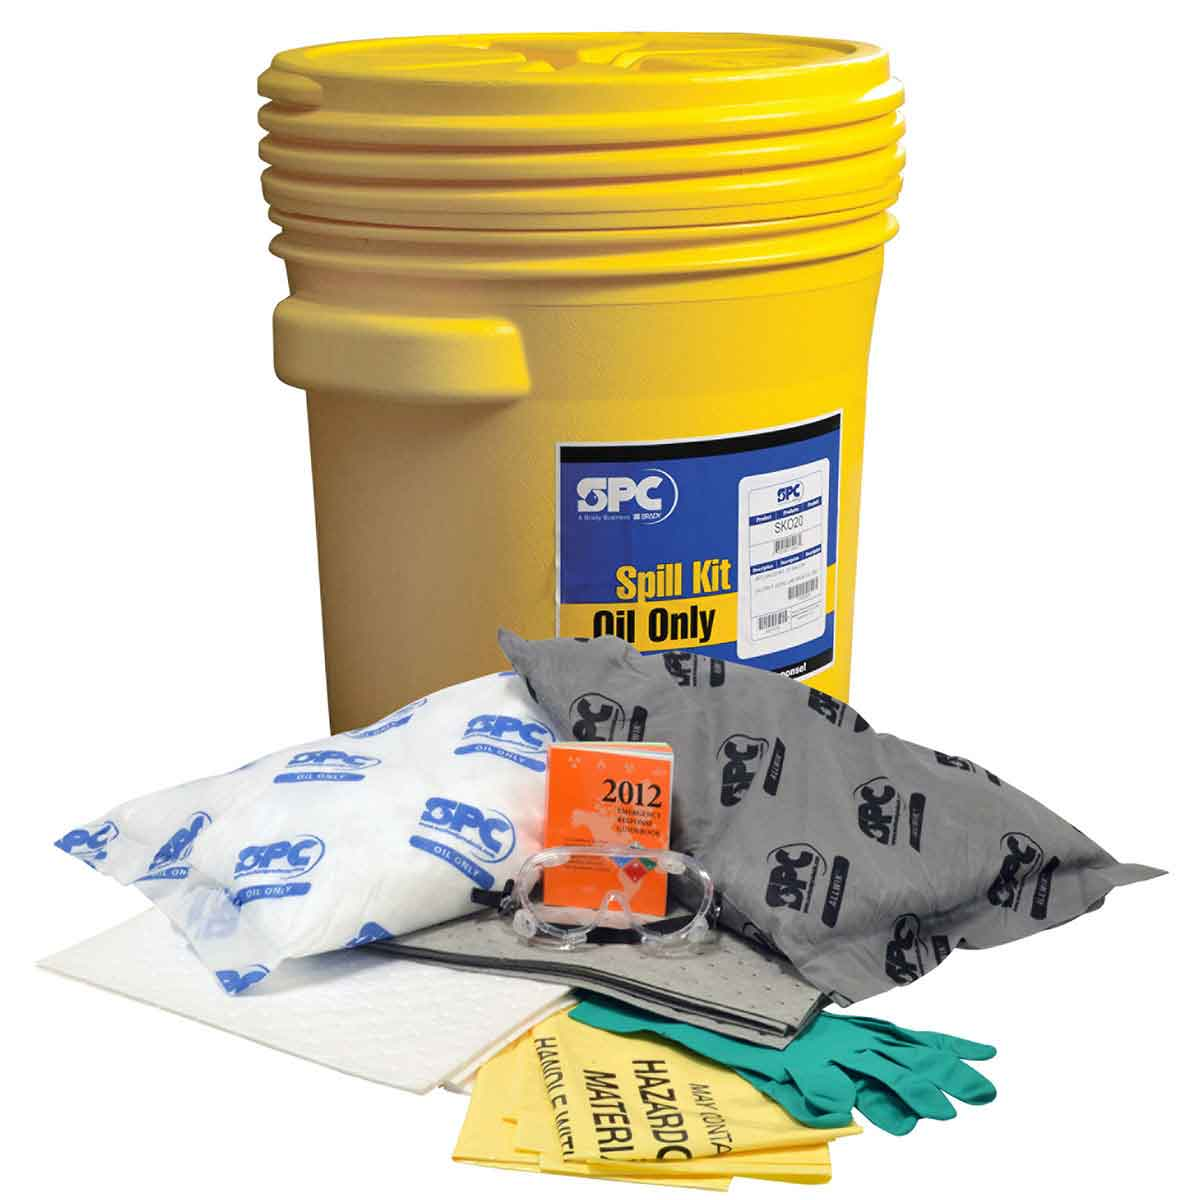 20 GALLON MIXED APPLICATION SPILL KIT